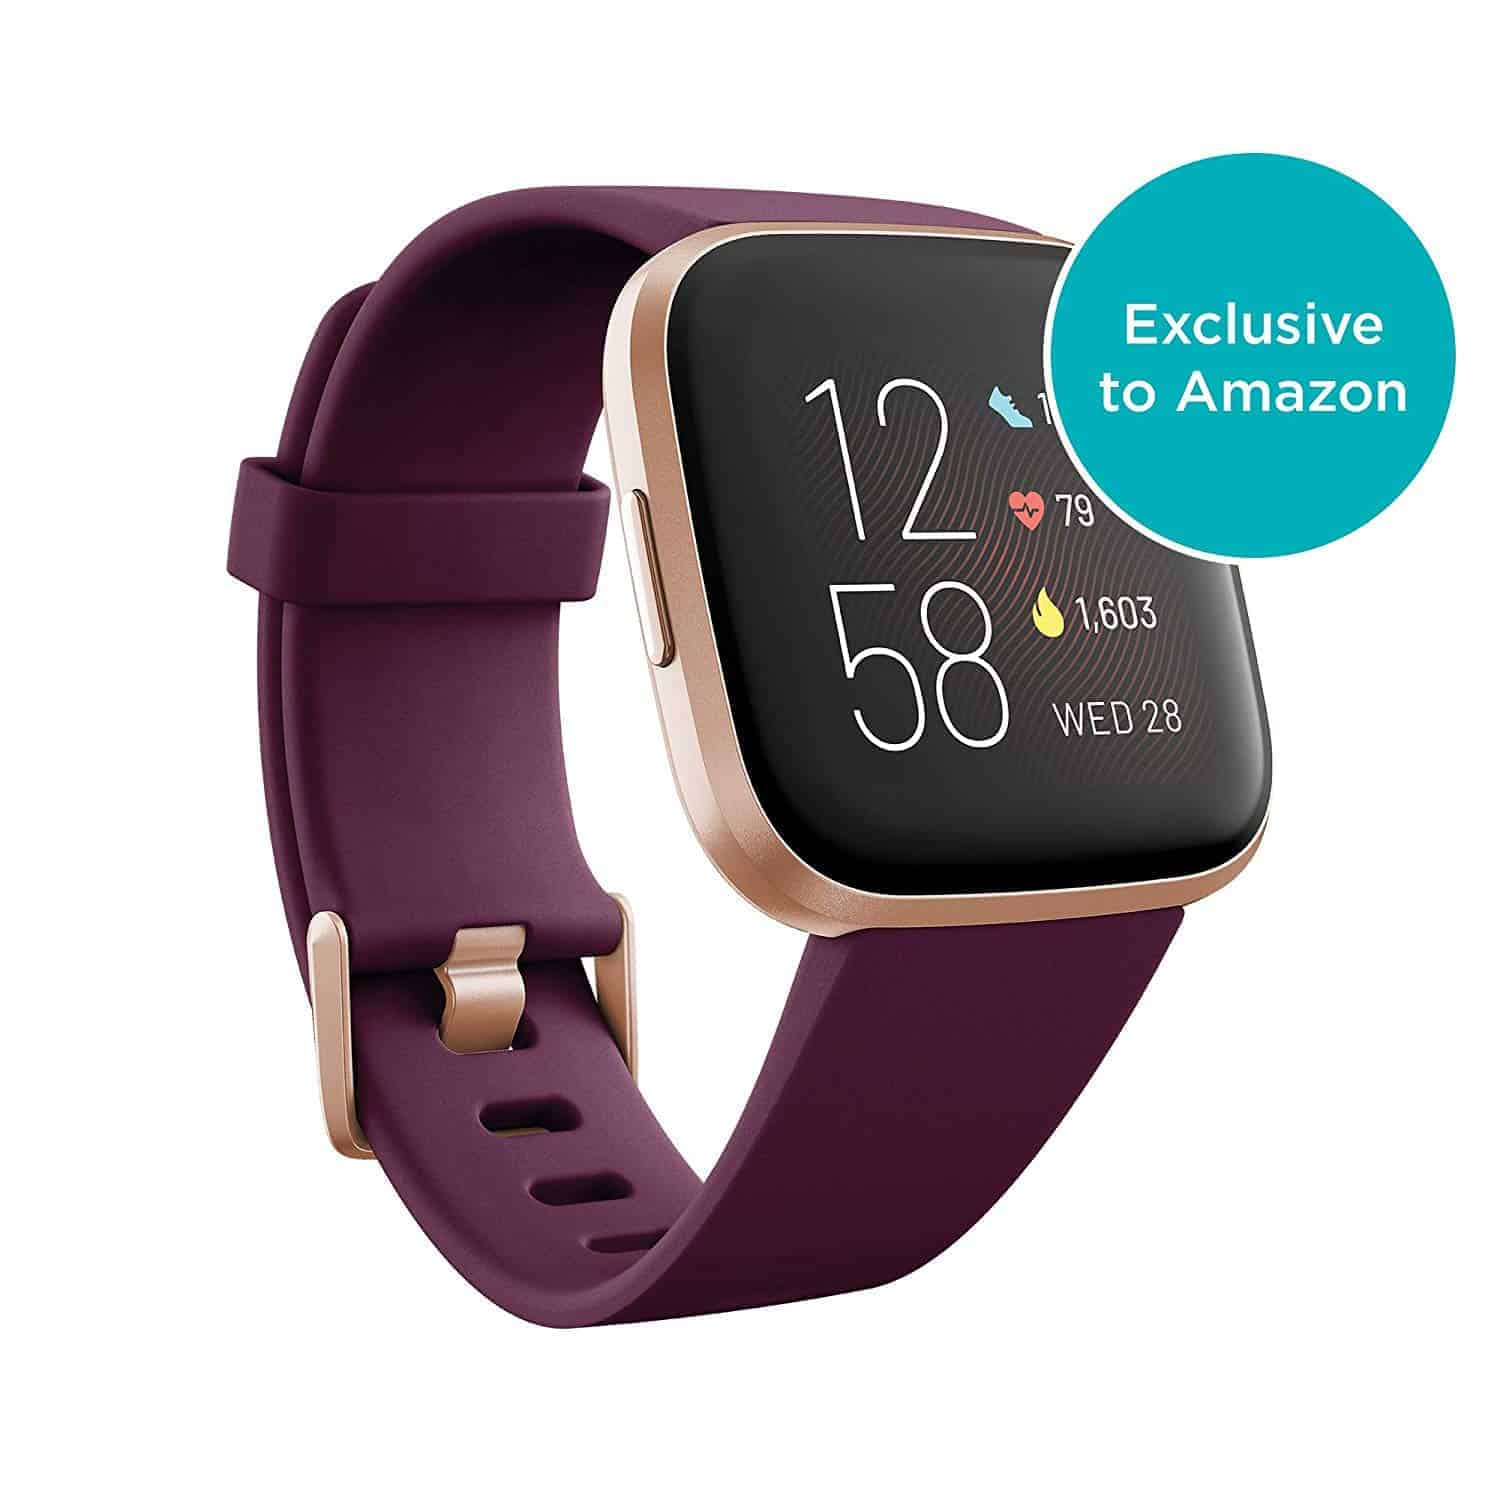 Save up to $70 on Select Fitbit Items - Amazon